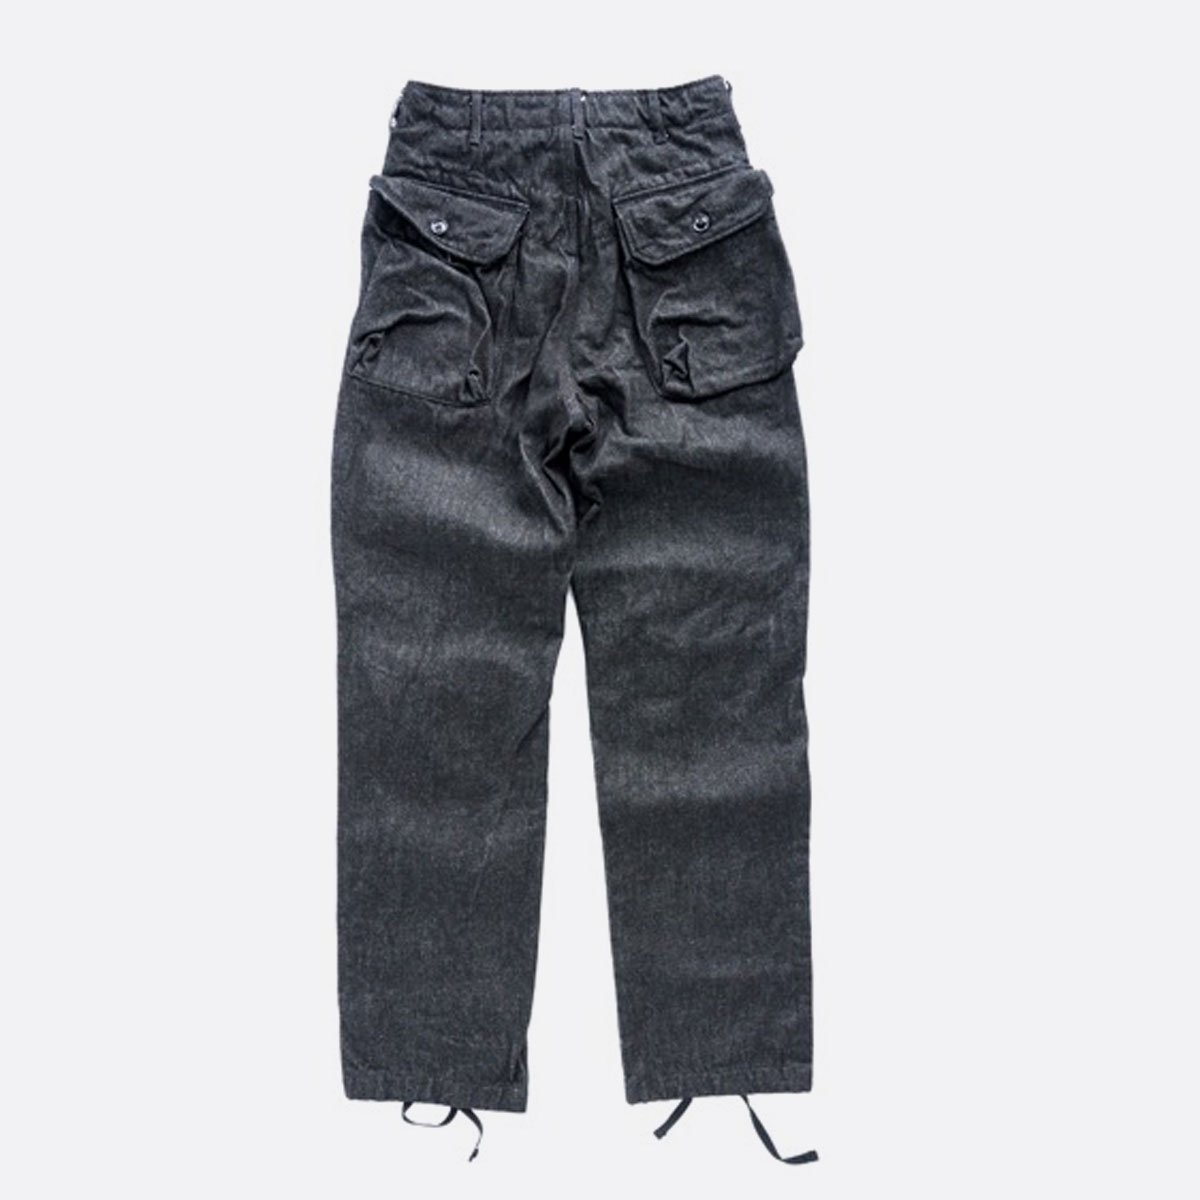 Engineered Garments Norwegian Pant - Heavy Denim  (Black)2